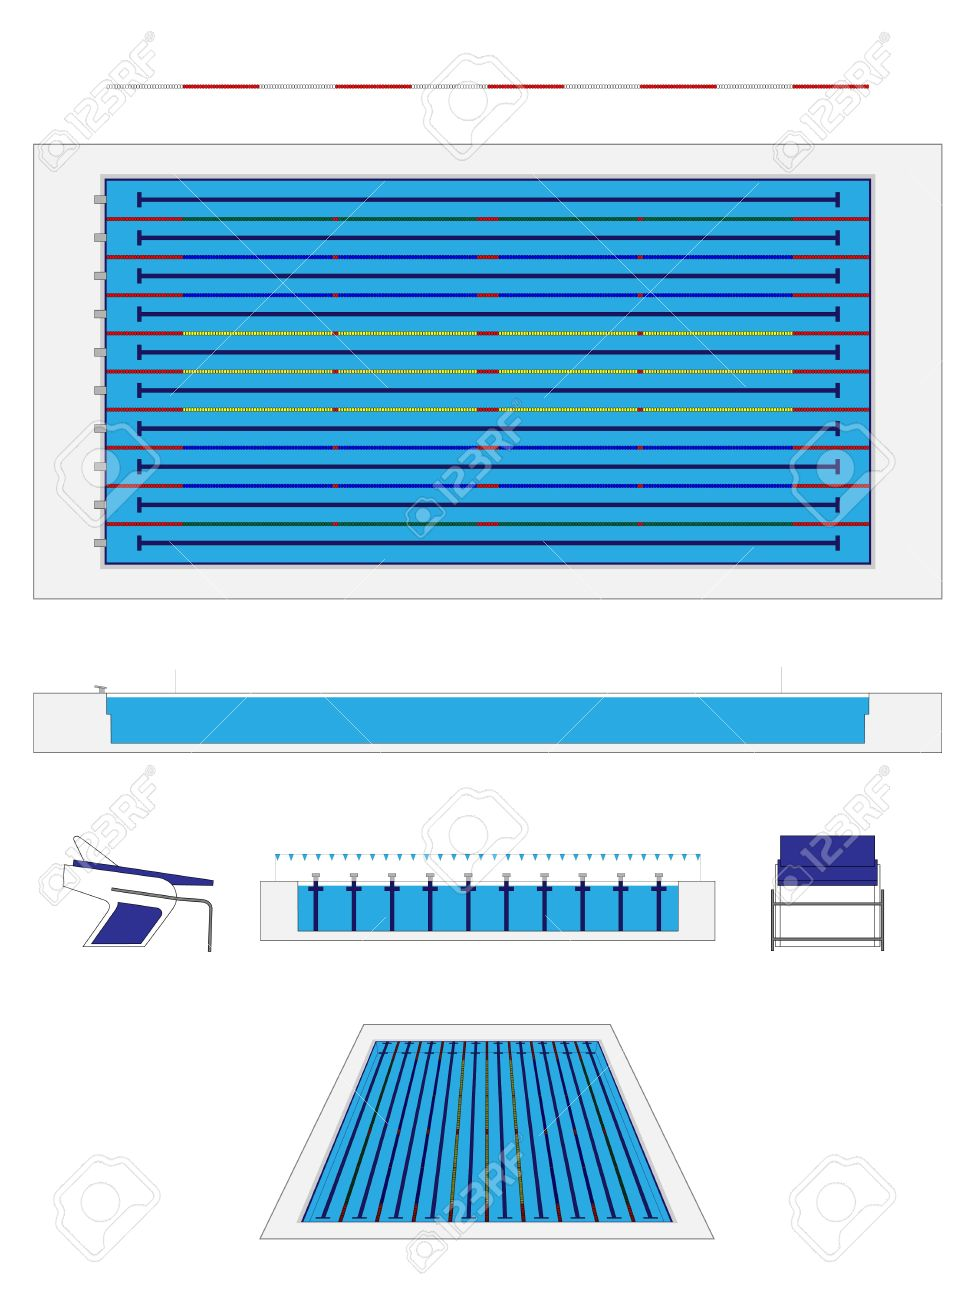 exellent olympic swimming pool top view swimming pool stock vector 14869880 olympic top view throughout